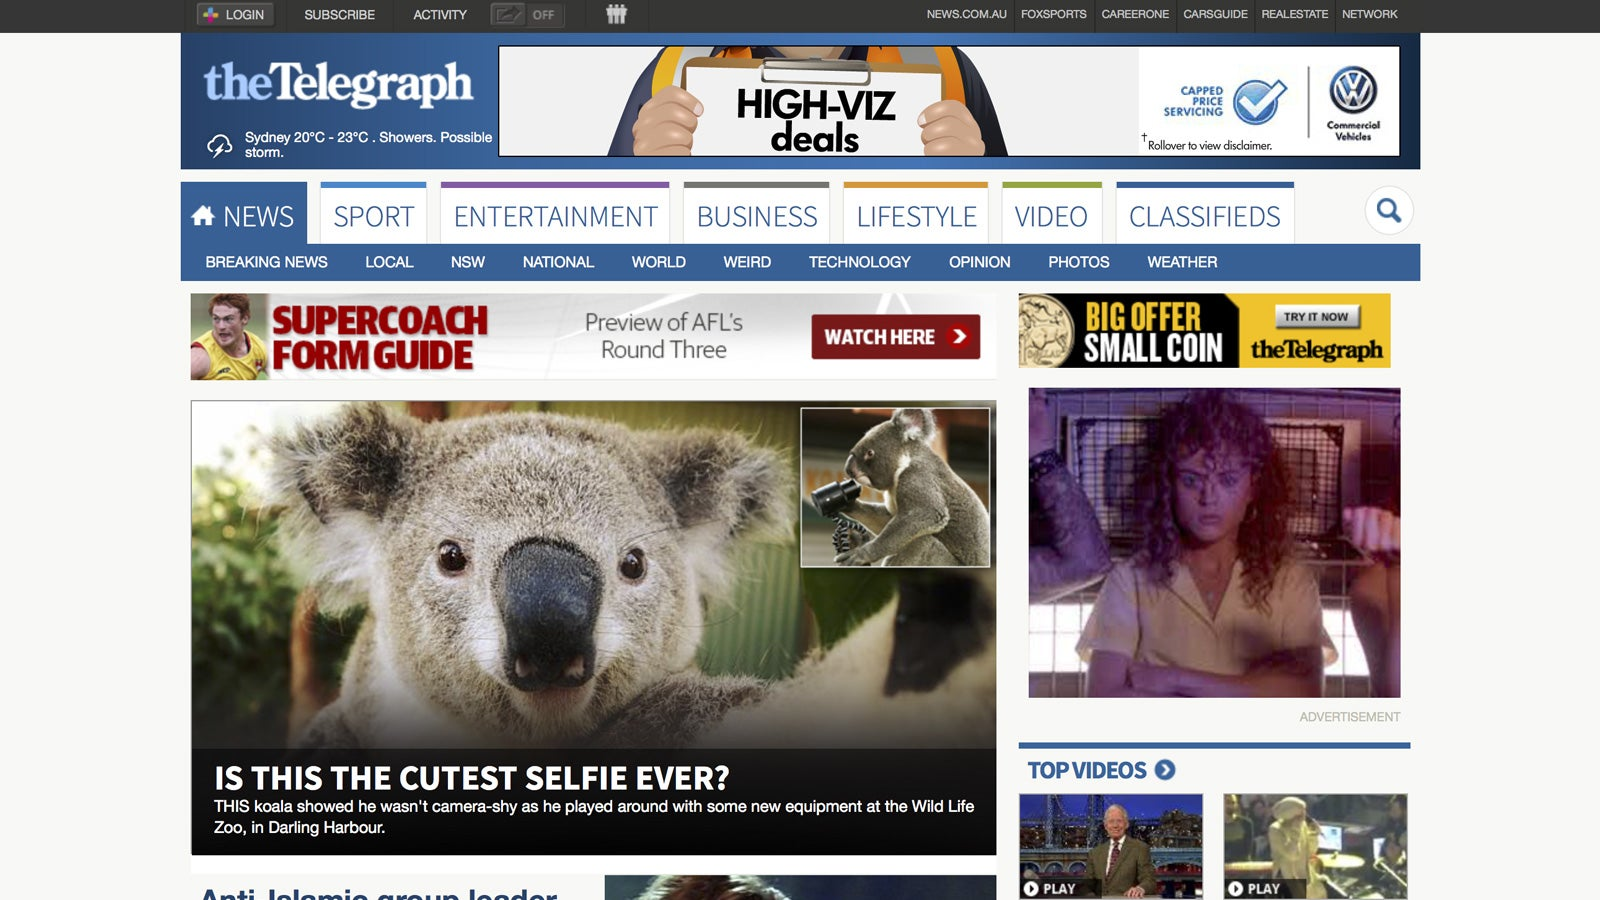 Sony   The Telegraph with the lead story about Koala selfies   Devotion